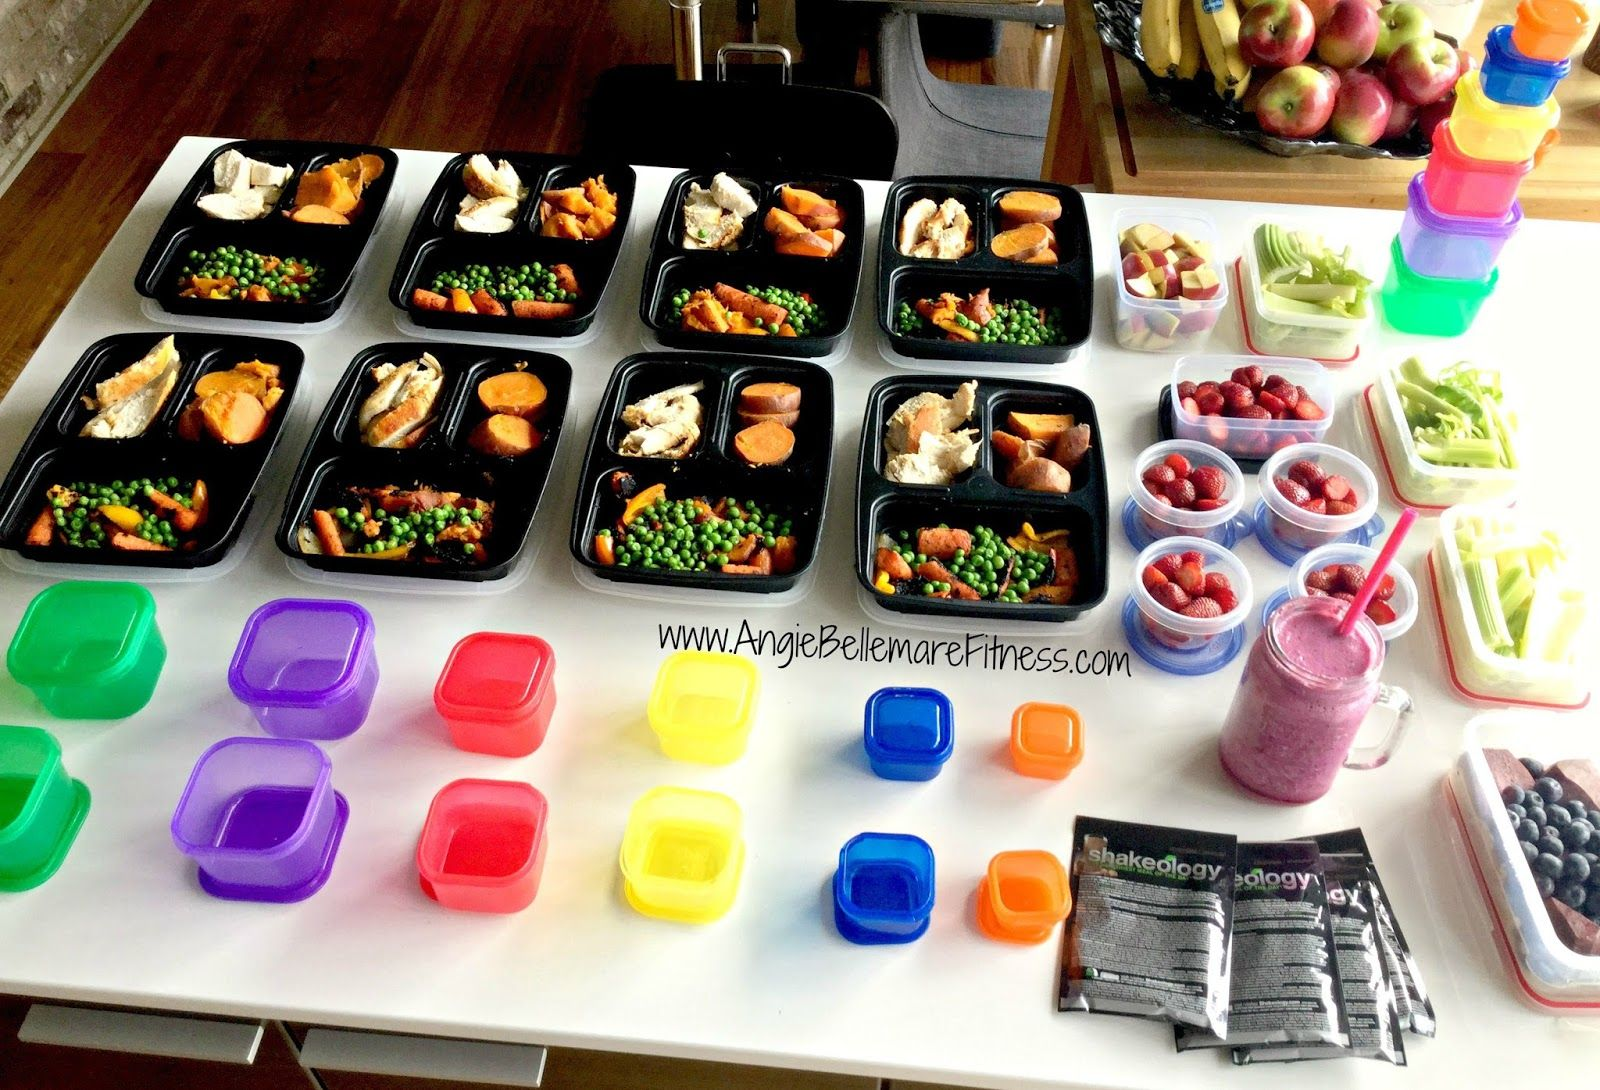 Angie Bellemare Fitness: Meal Prep with the 21 Day Fix